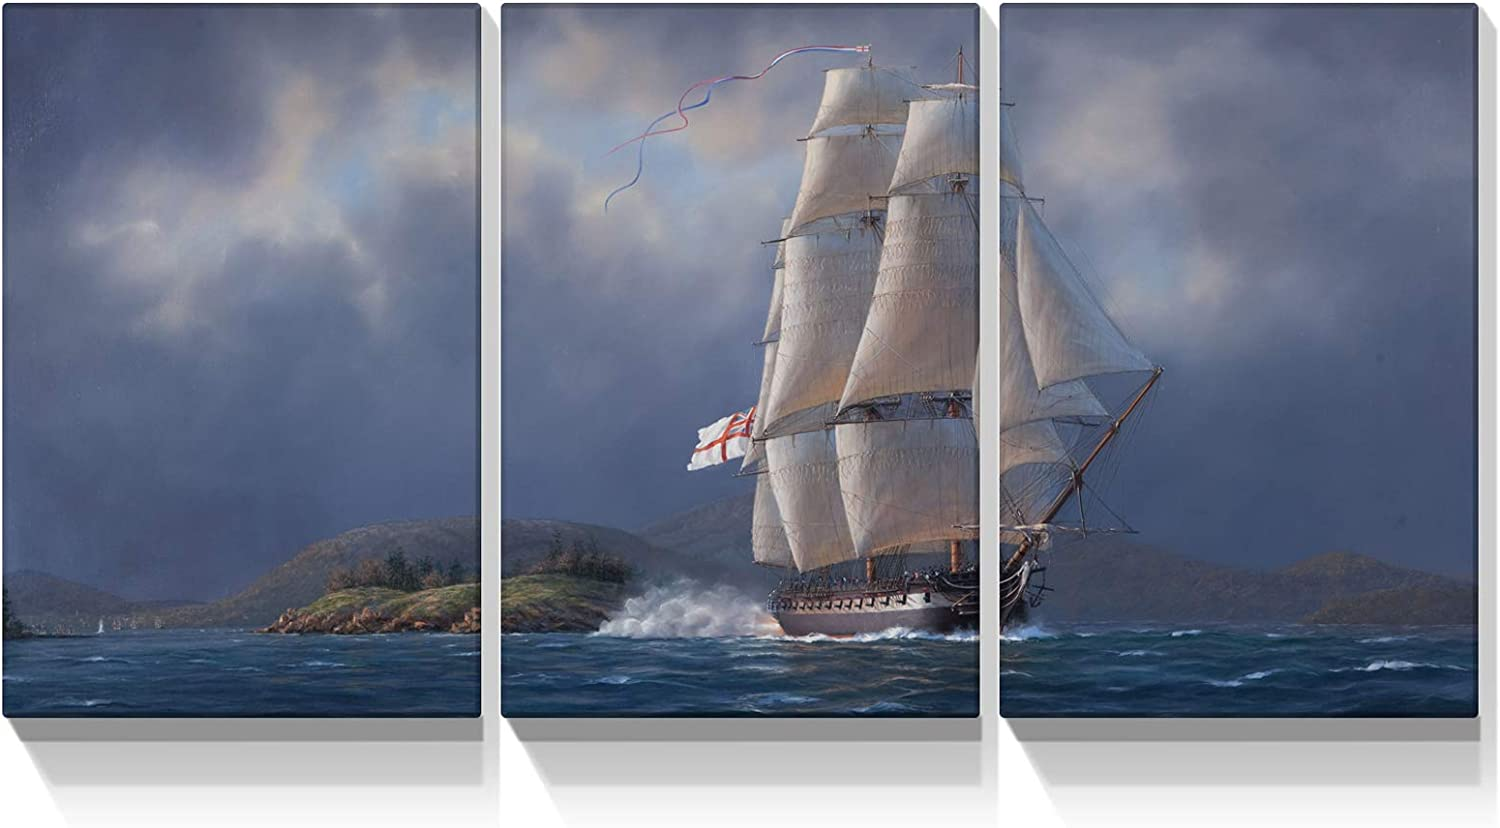 Looife 3 Panels Nature Scenery Canvas Wall Art, 24x36 Inch 3 Pieces Sailboat on Stormy Sea Picture Prints Artwork Wall Decor, Gallery Wrapped Triptych Home Deco Set for Bedroom, Living Room